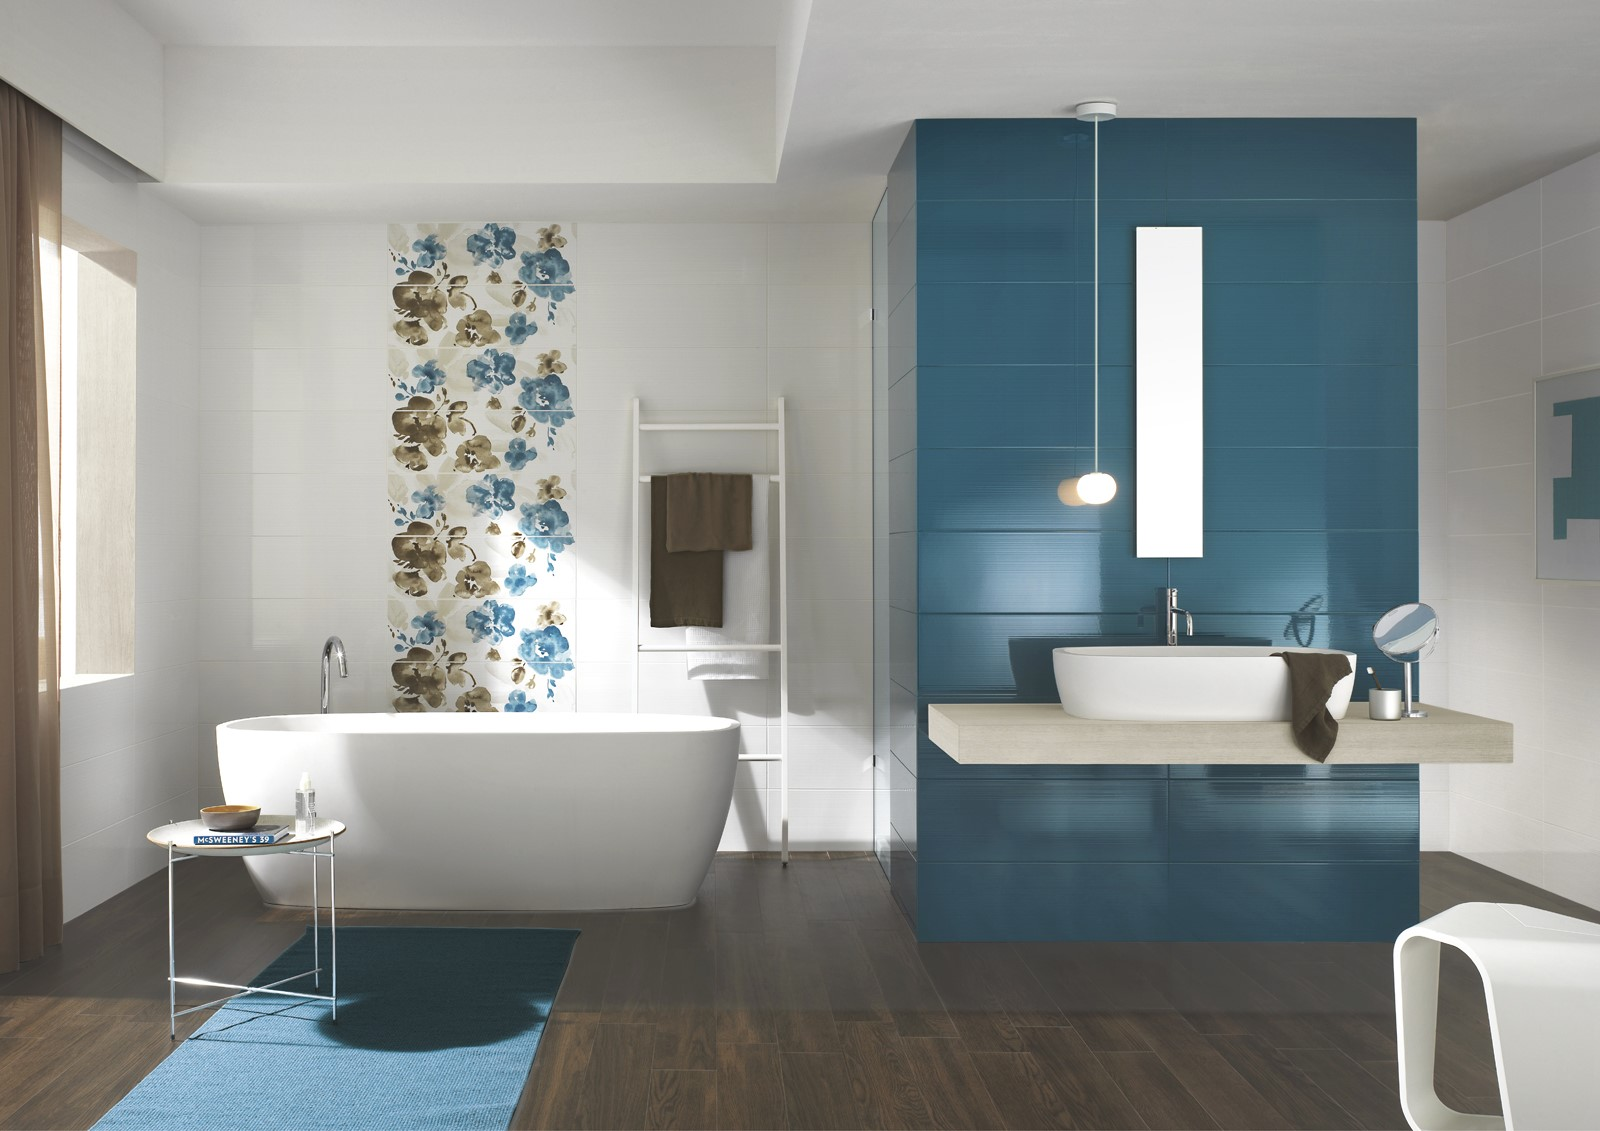 faience salle de bain bleu stunning salle de bain avec faience bleu gallery amazing circus. Black Bedroom Furniture Sets. Home Design Ideas